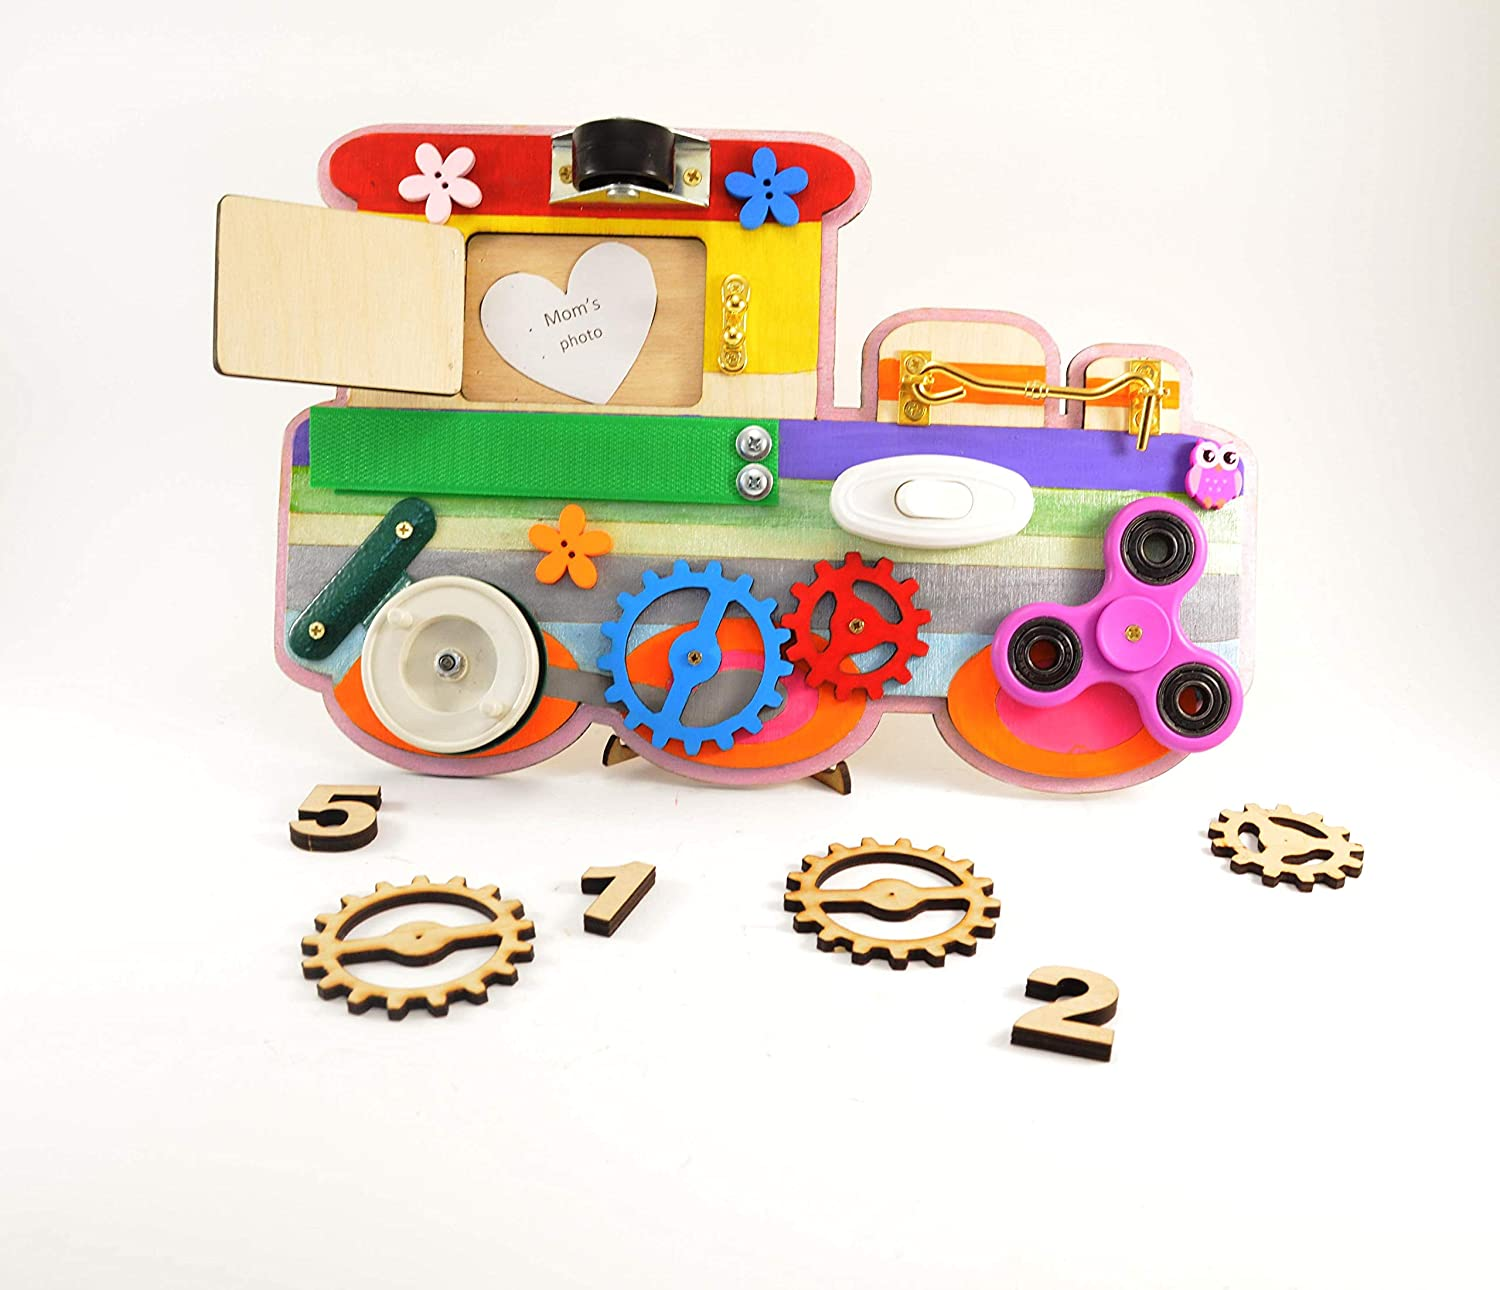 Train busy board Baby learning toy Toddler gifts Travel toys Educational Motor skills Montessori for baby Waldorf for toddler Busy mom Play